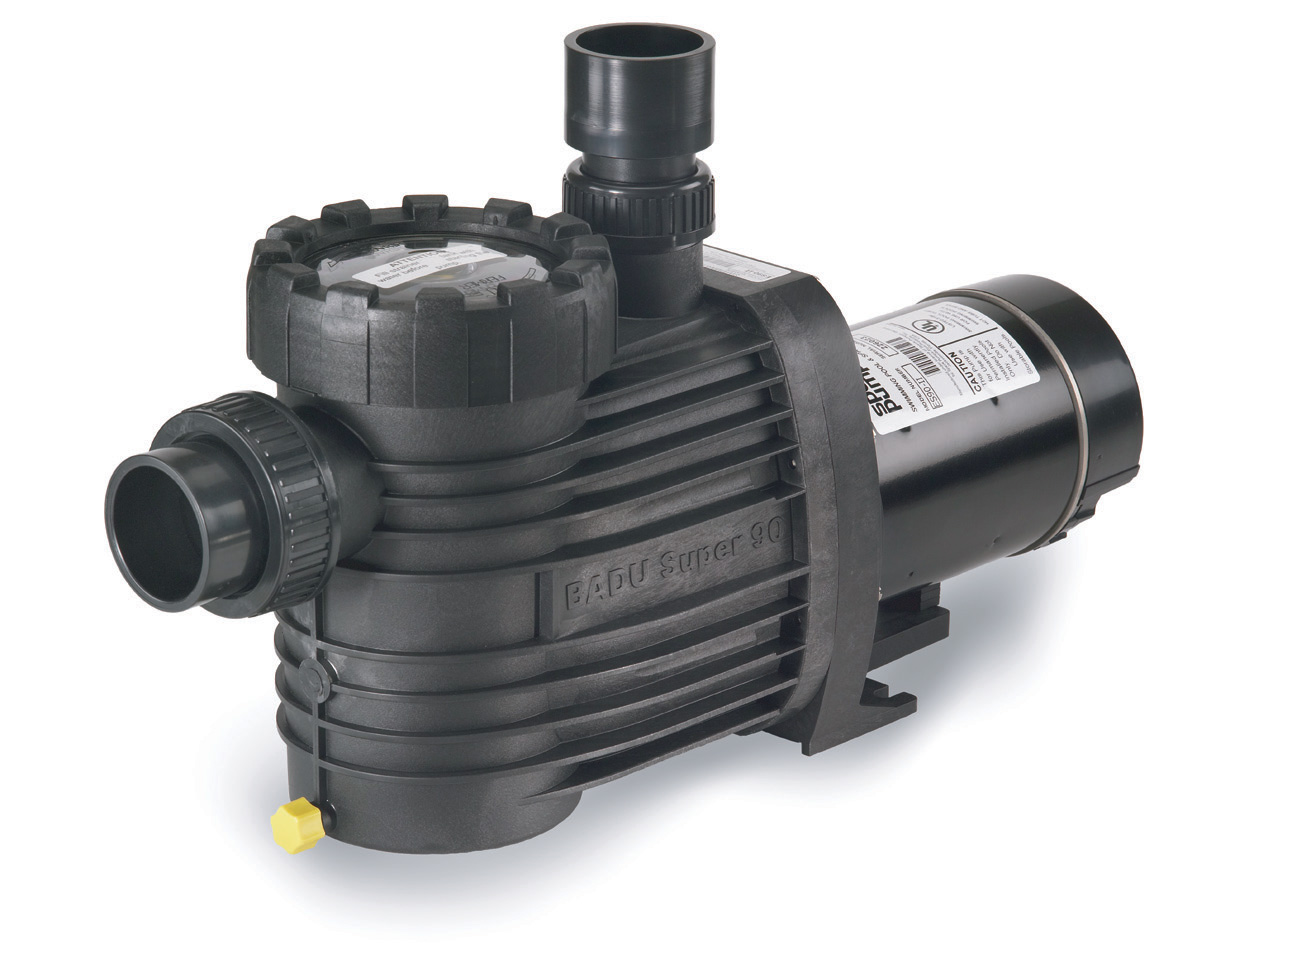 Speck®ES90 - The Speck Model ES90 medium head pump has been engineered for durability and quiet performance. This all-plastic, self-priming pump with a large basket is ideally suited for small to medium in-ground pools.